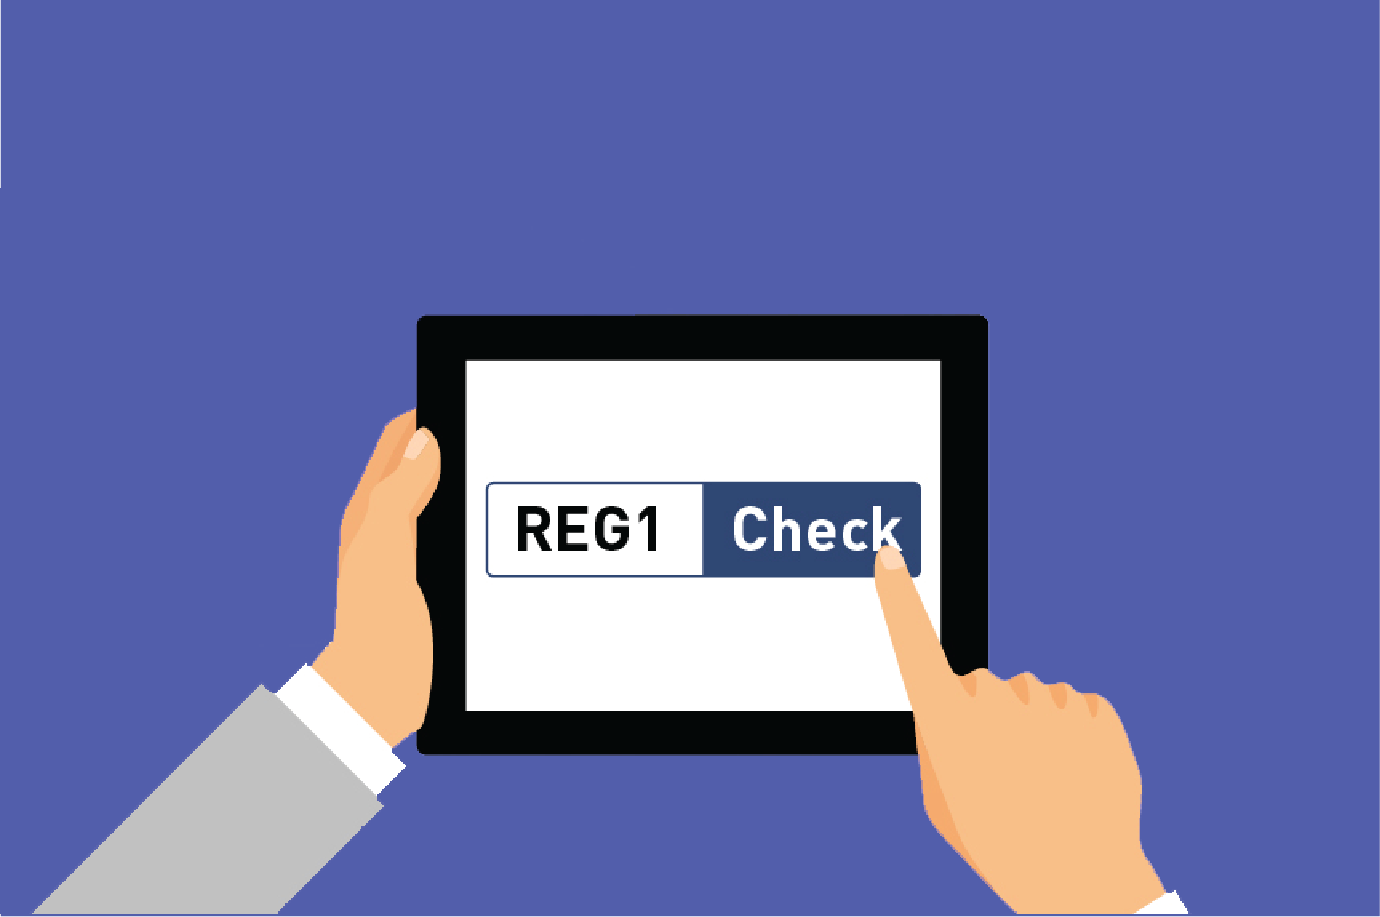 """A graphic showing two hands holding a tablet computer. A finger is on a button on the screen which is in two parts. The first part says """"Reg"""" and the second part, with the finger hovering over it, says """"Check""""."""